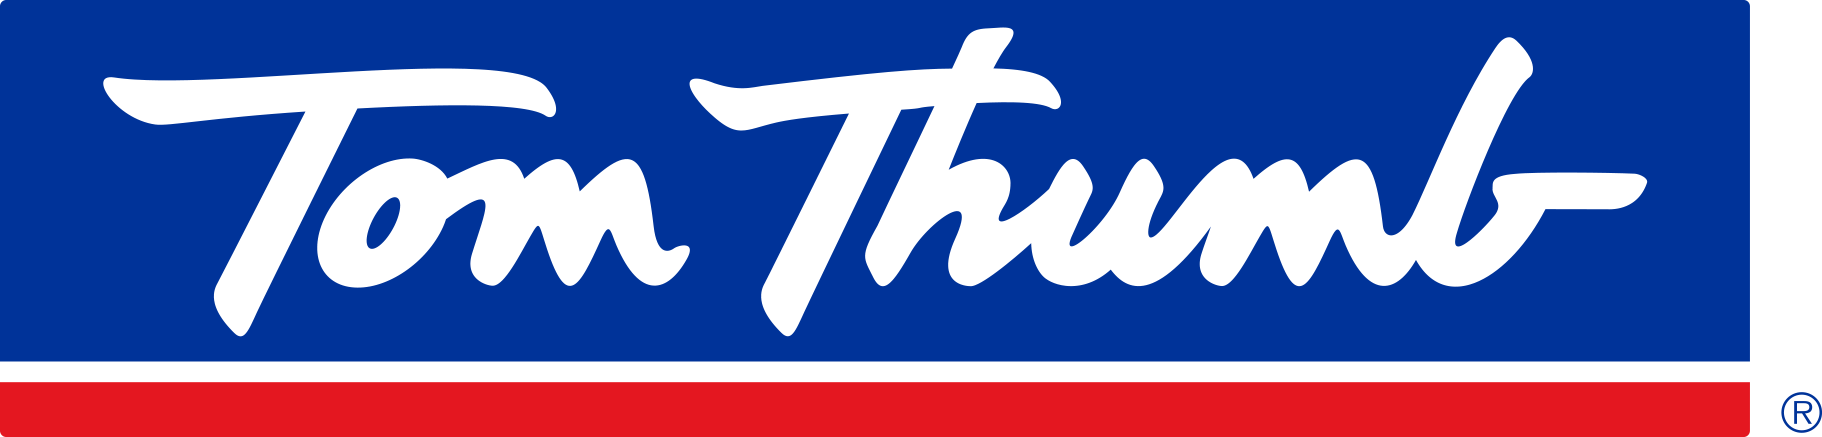 Tom Thumb PNG